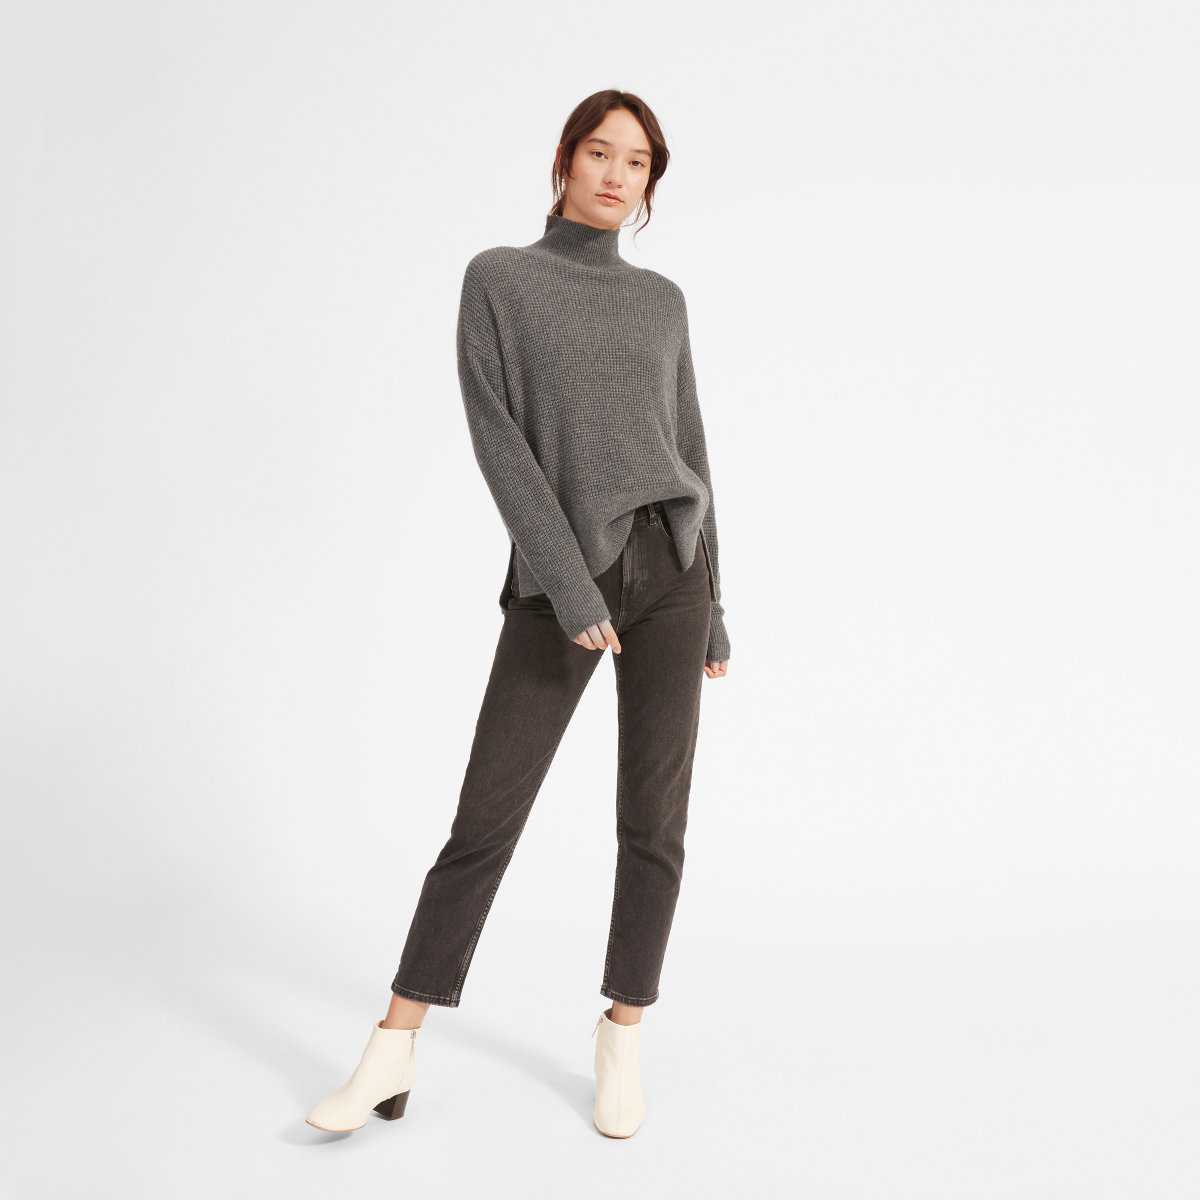 The Cashmere Waffle Square Turtleneck